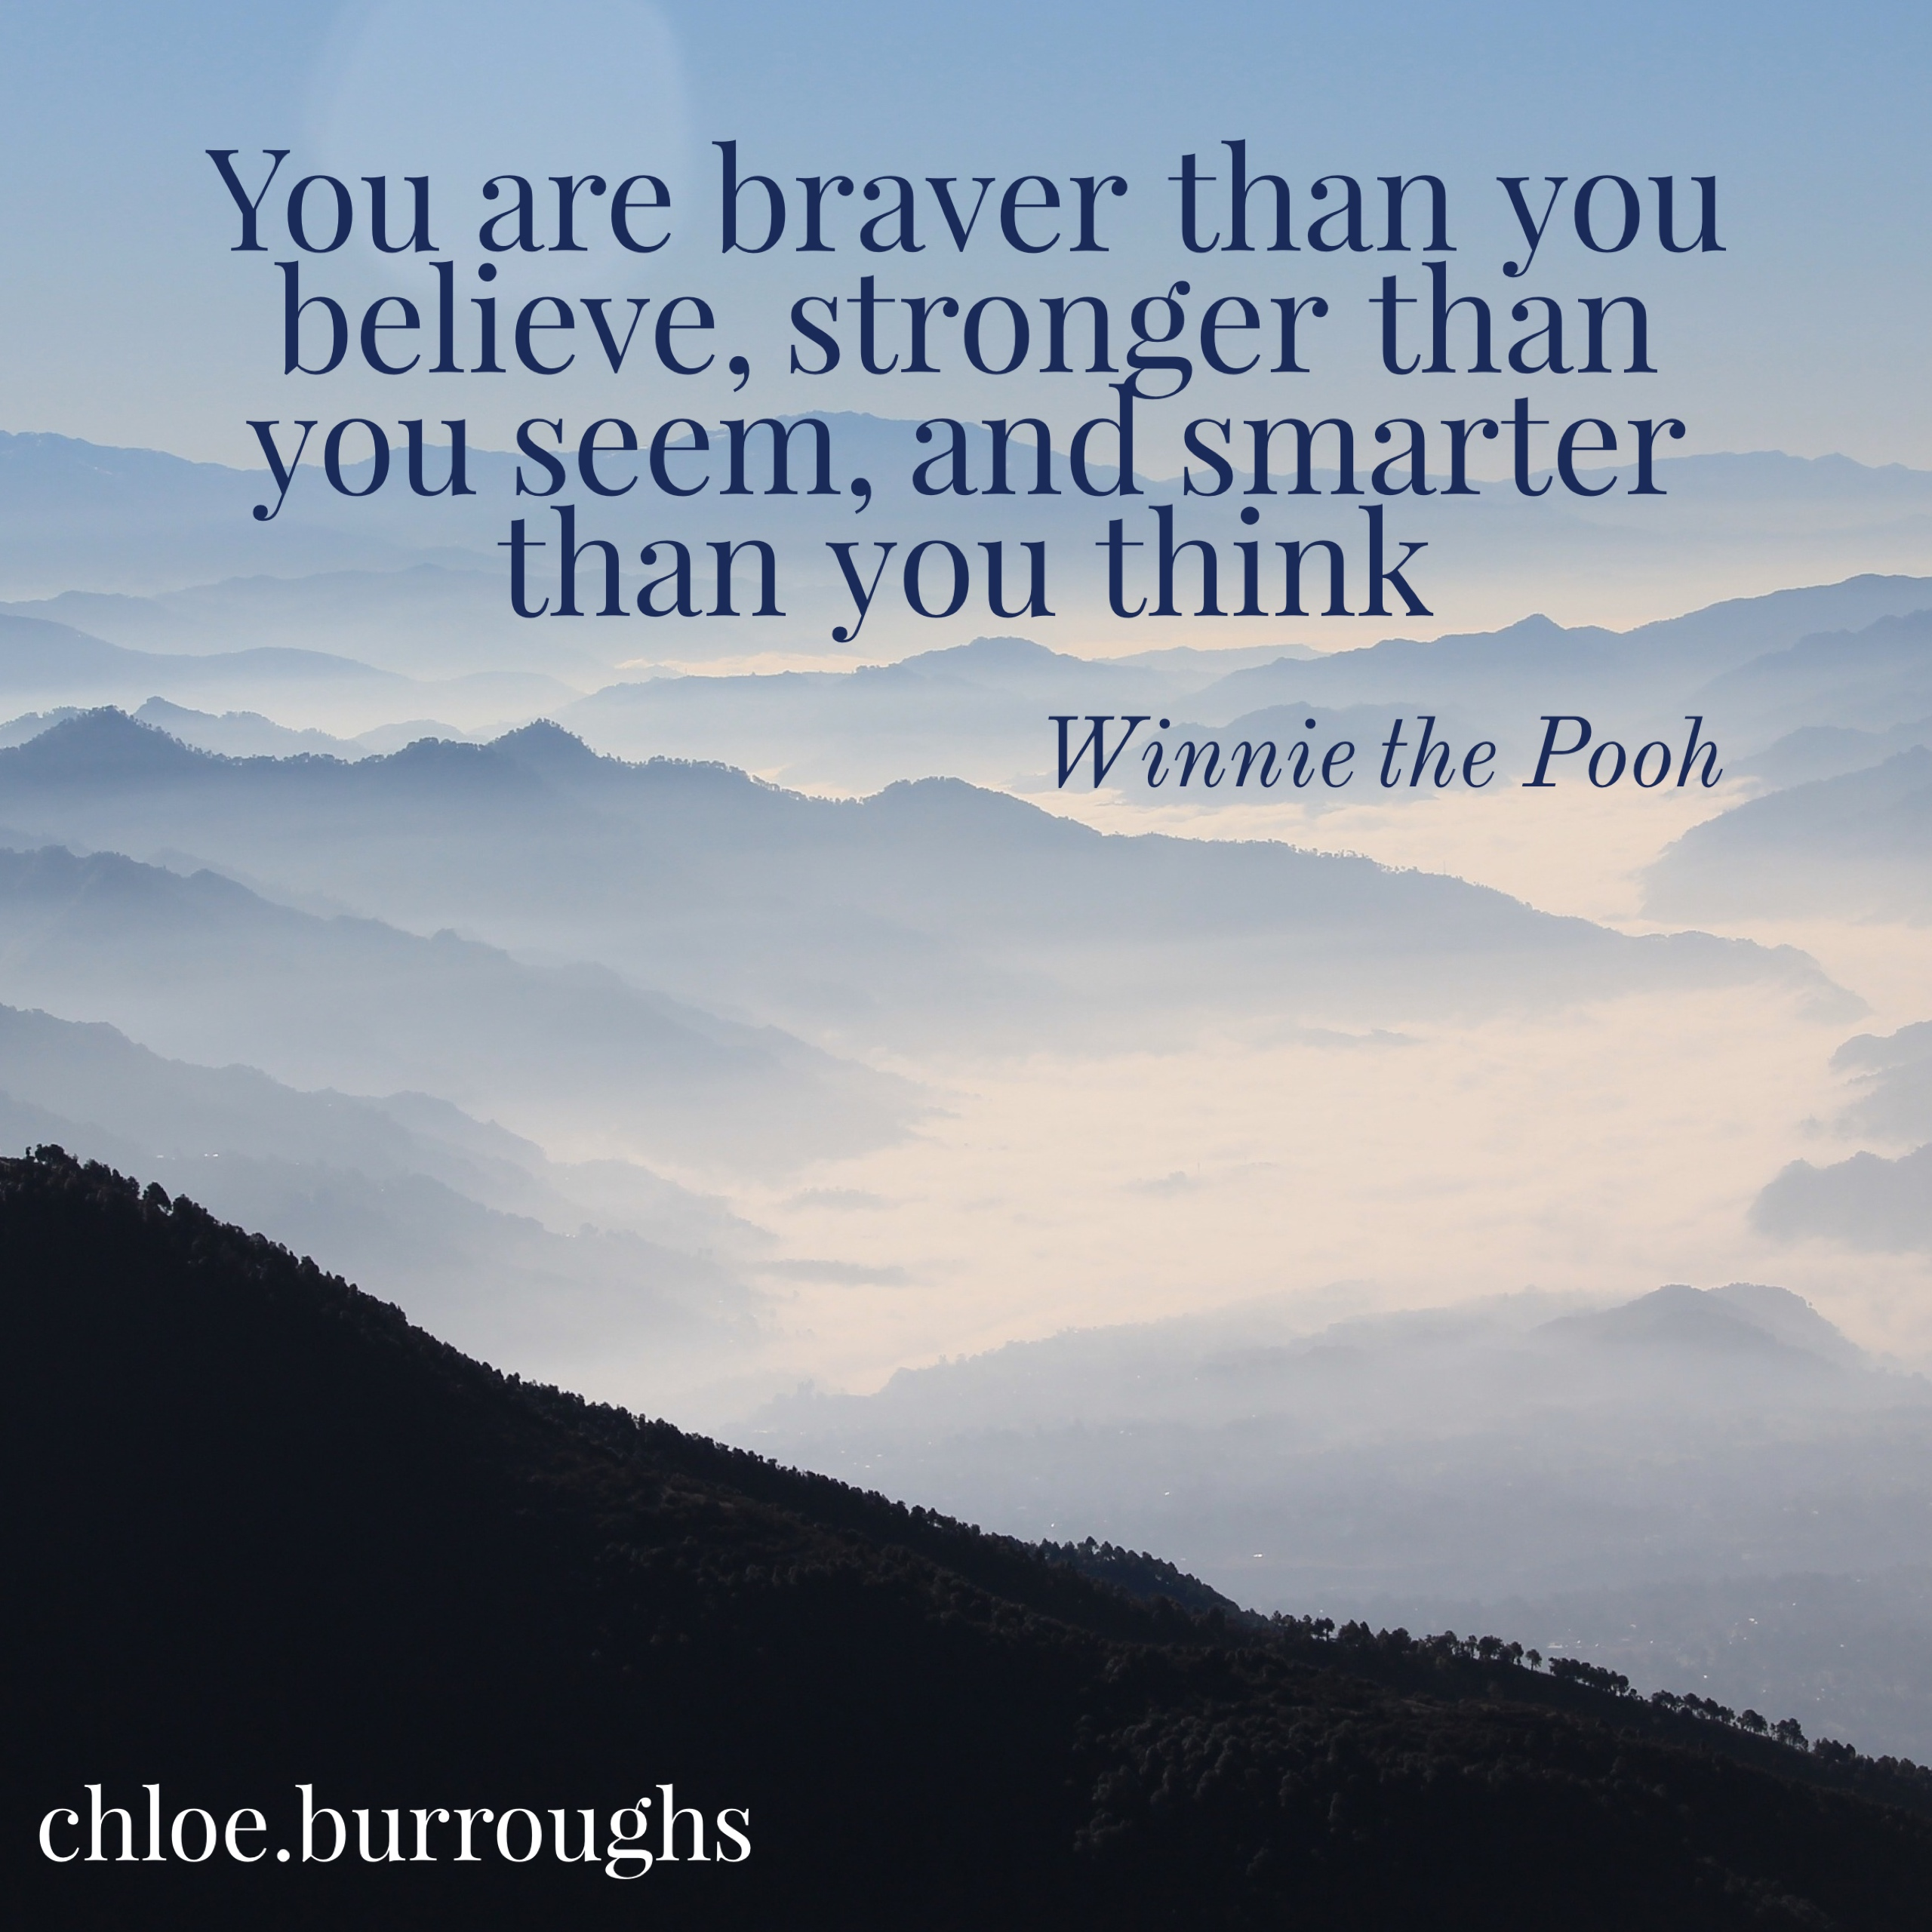 Winnie the pooh - quote